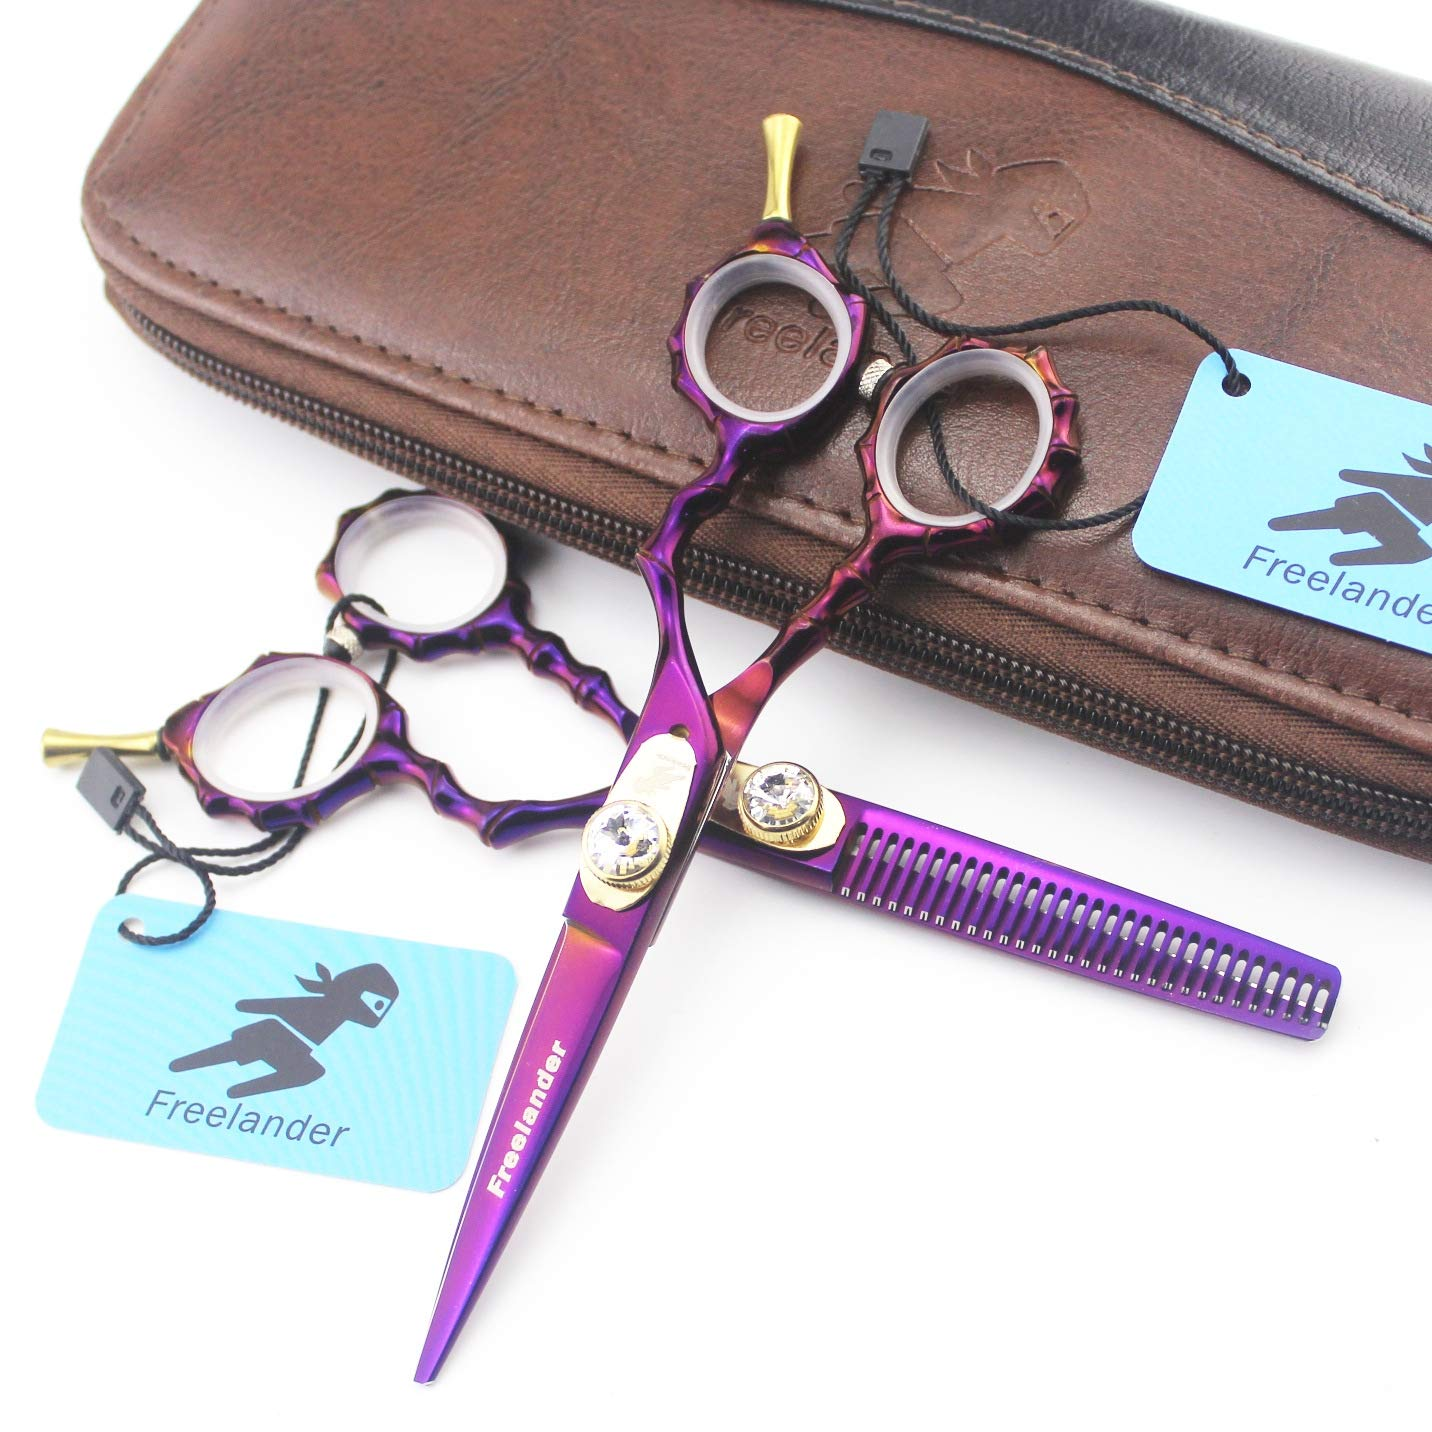 NSST Professional Hair Cutting Set 5.5 Inch, Color Purple Adjustable, Japanese Stainless Steel Household Barber Scissors and Thinning Scissors